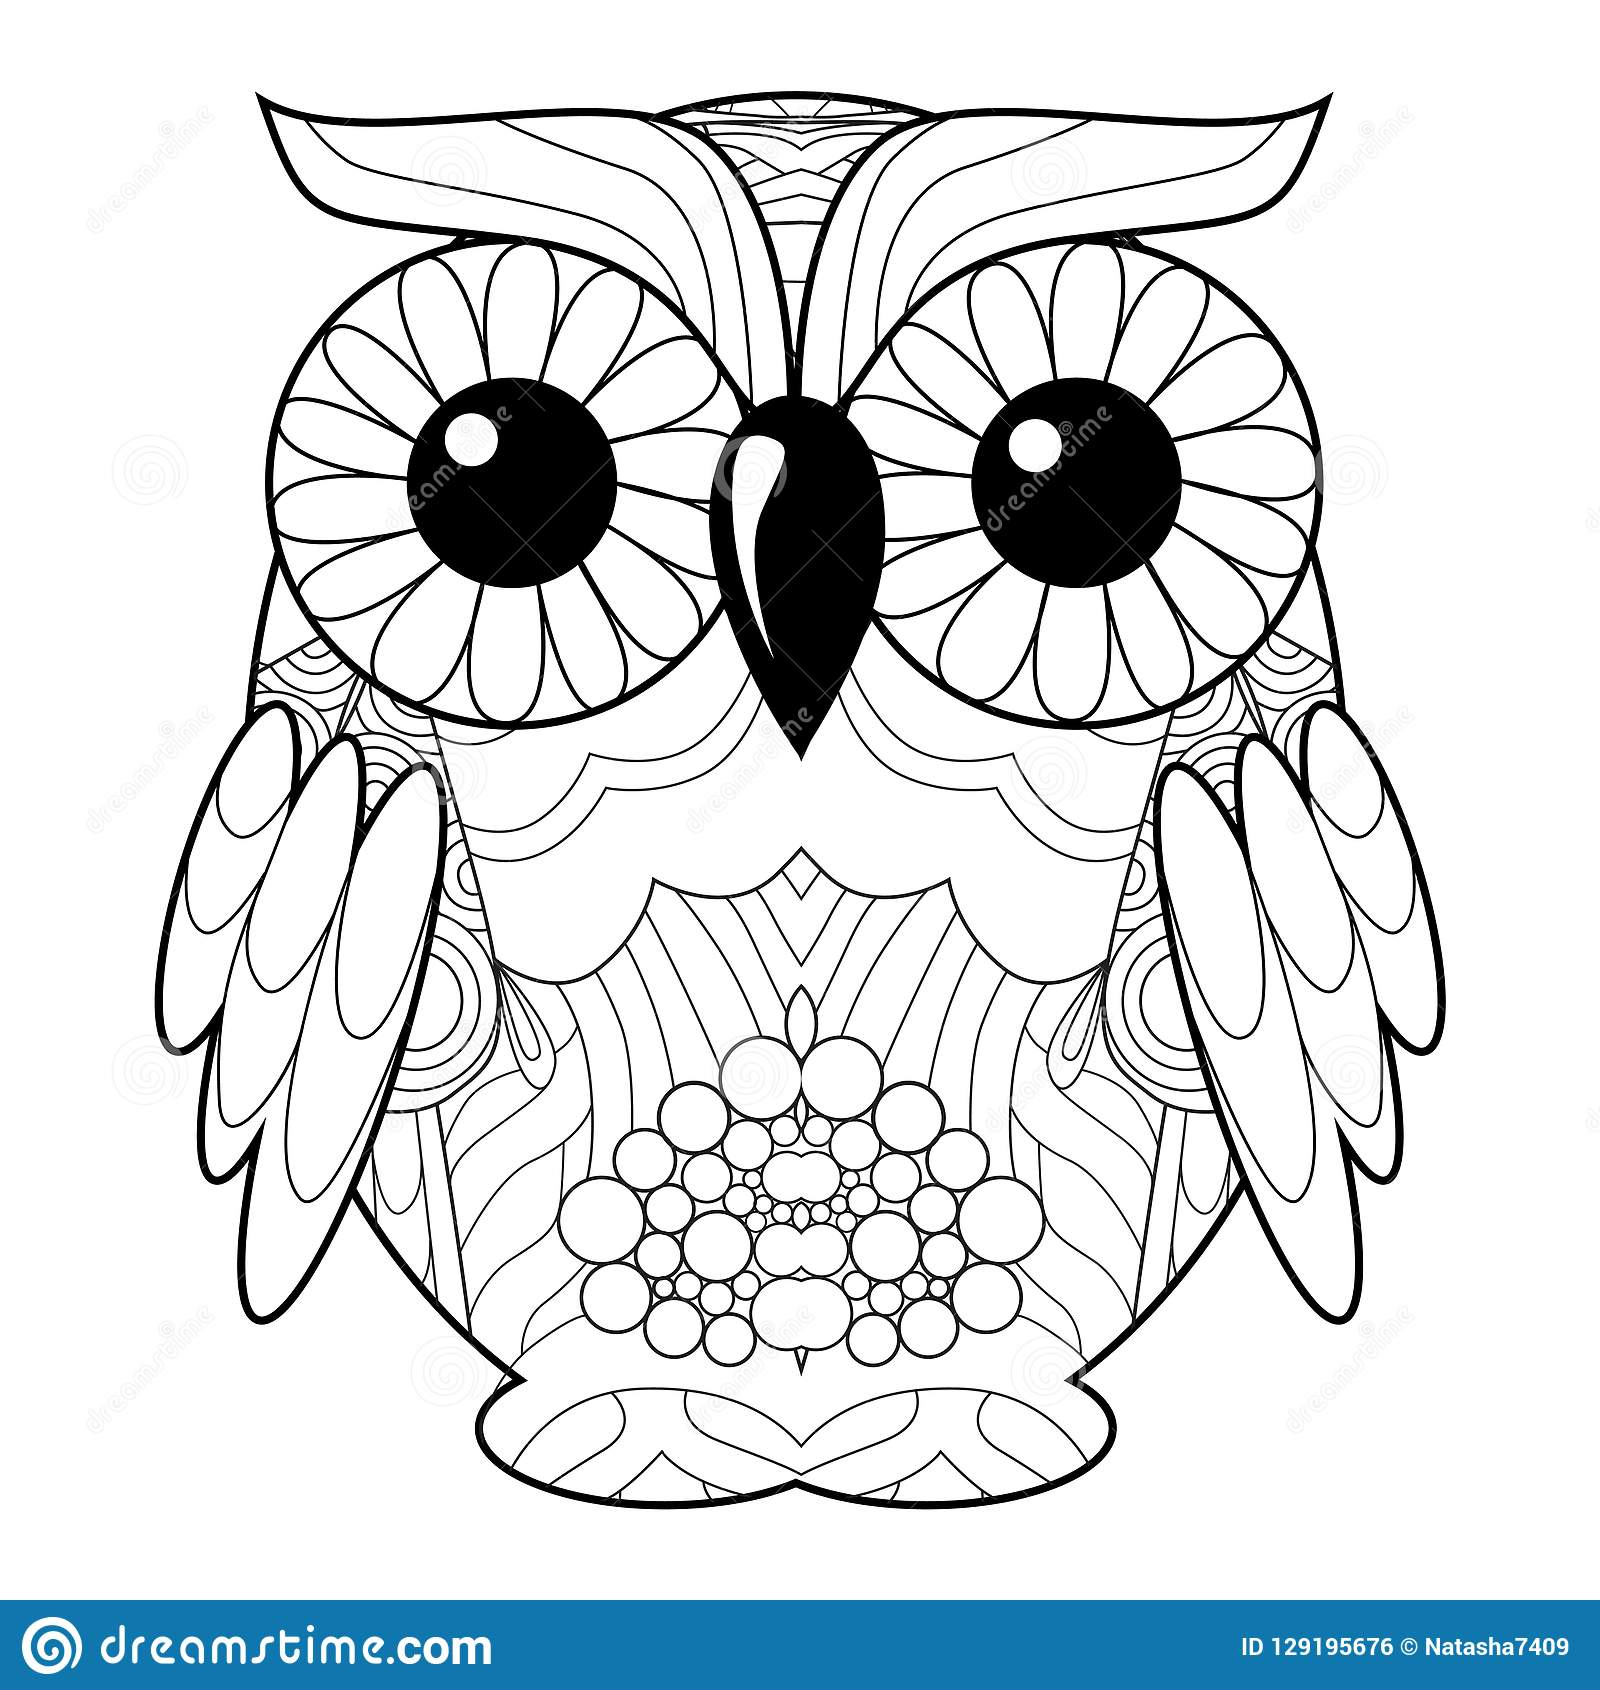 Owl For Coloring Page Or Decoration For Children Stock ...